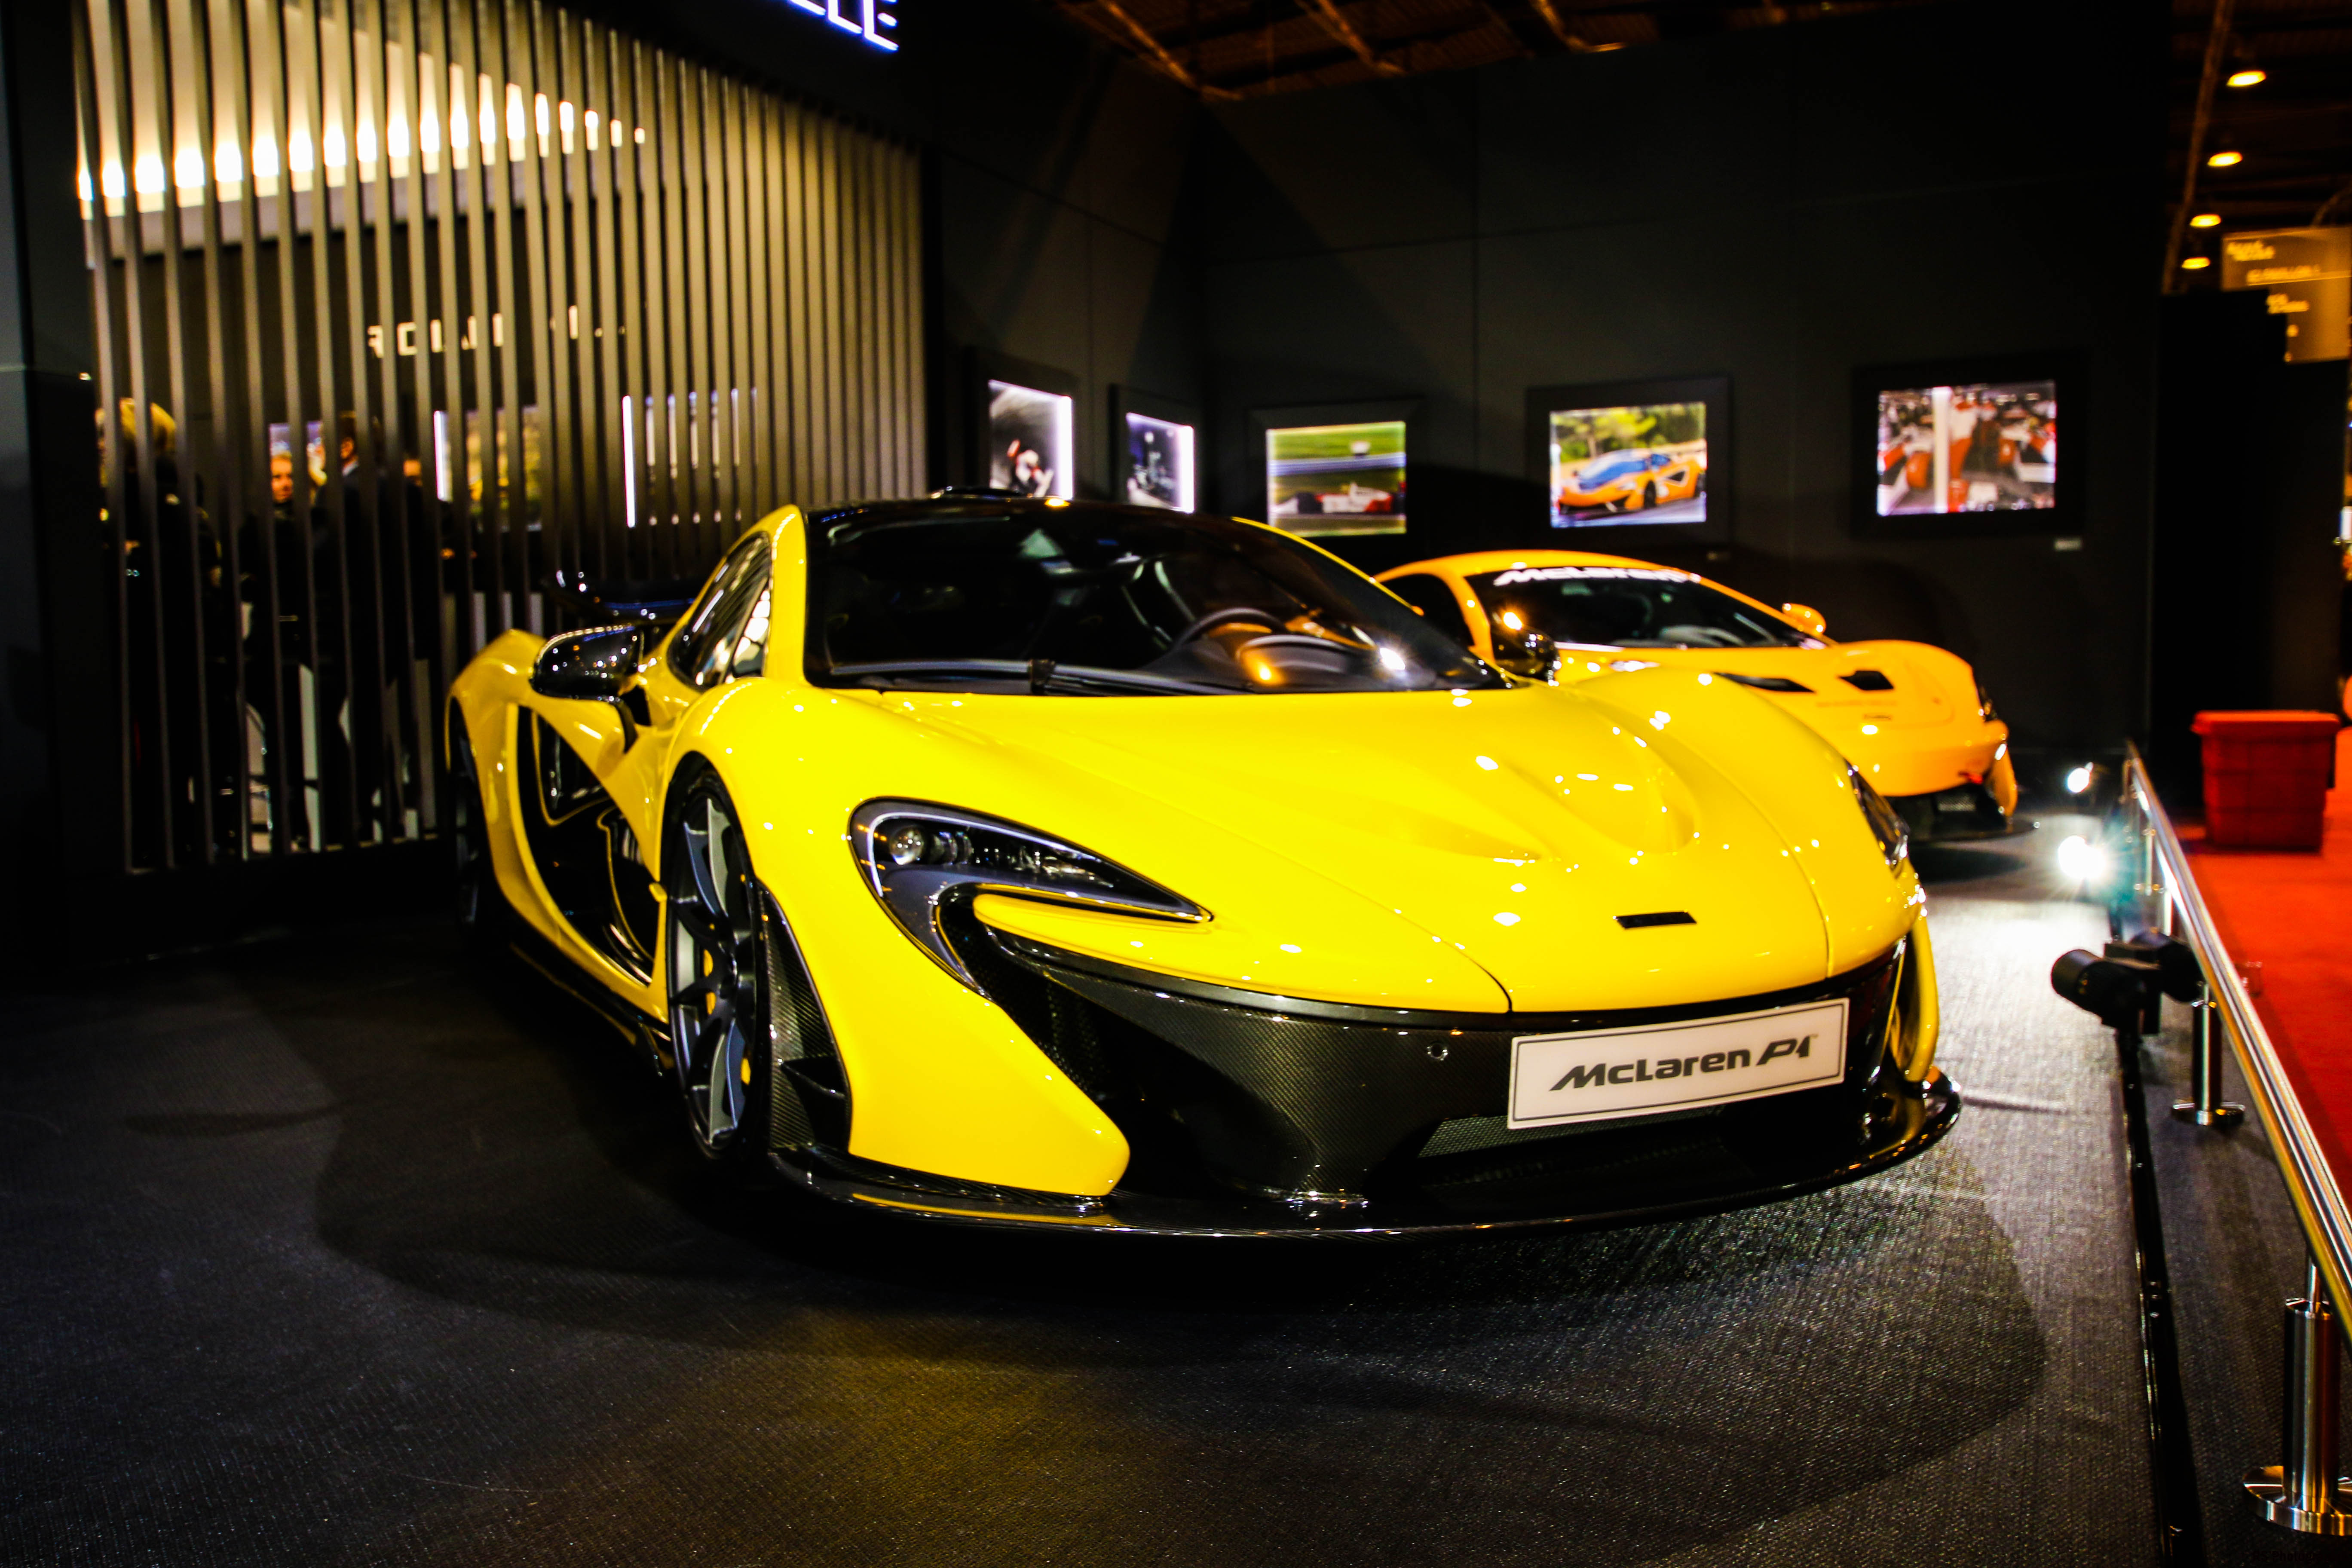 McLaren P1 - front light - 2013 - stand Richard Mille - Retromobile 2018 - photo by Arnaud Demasier RS Photographie